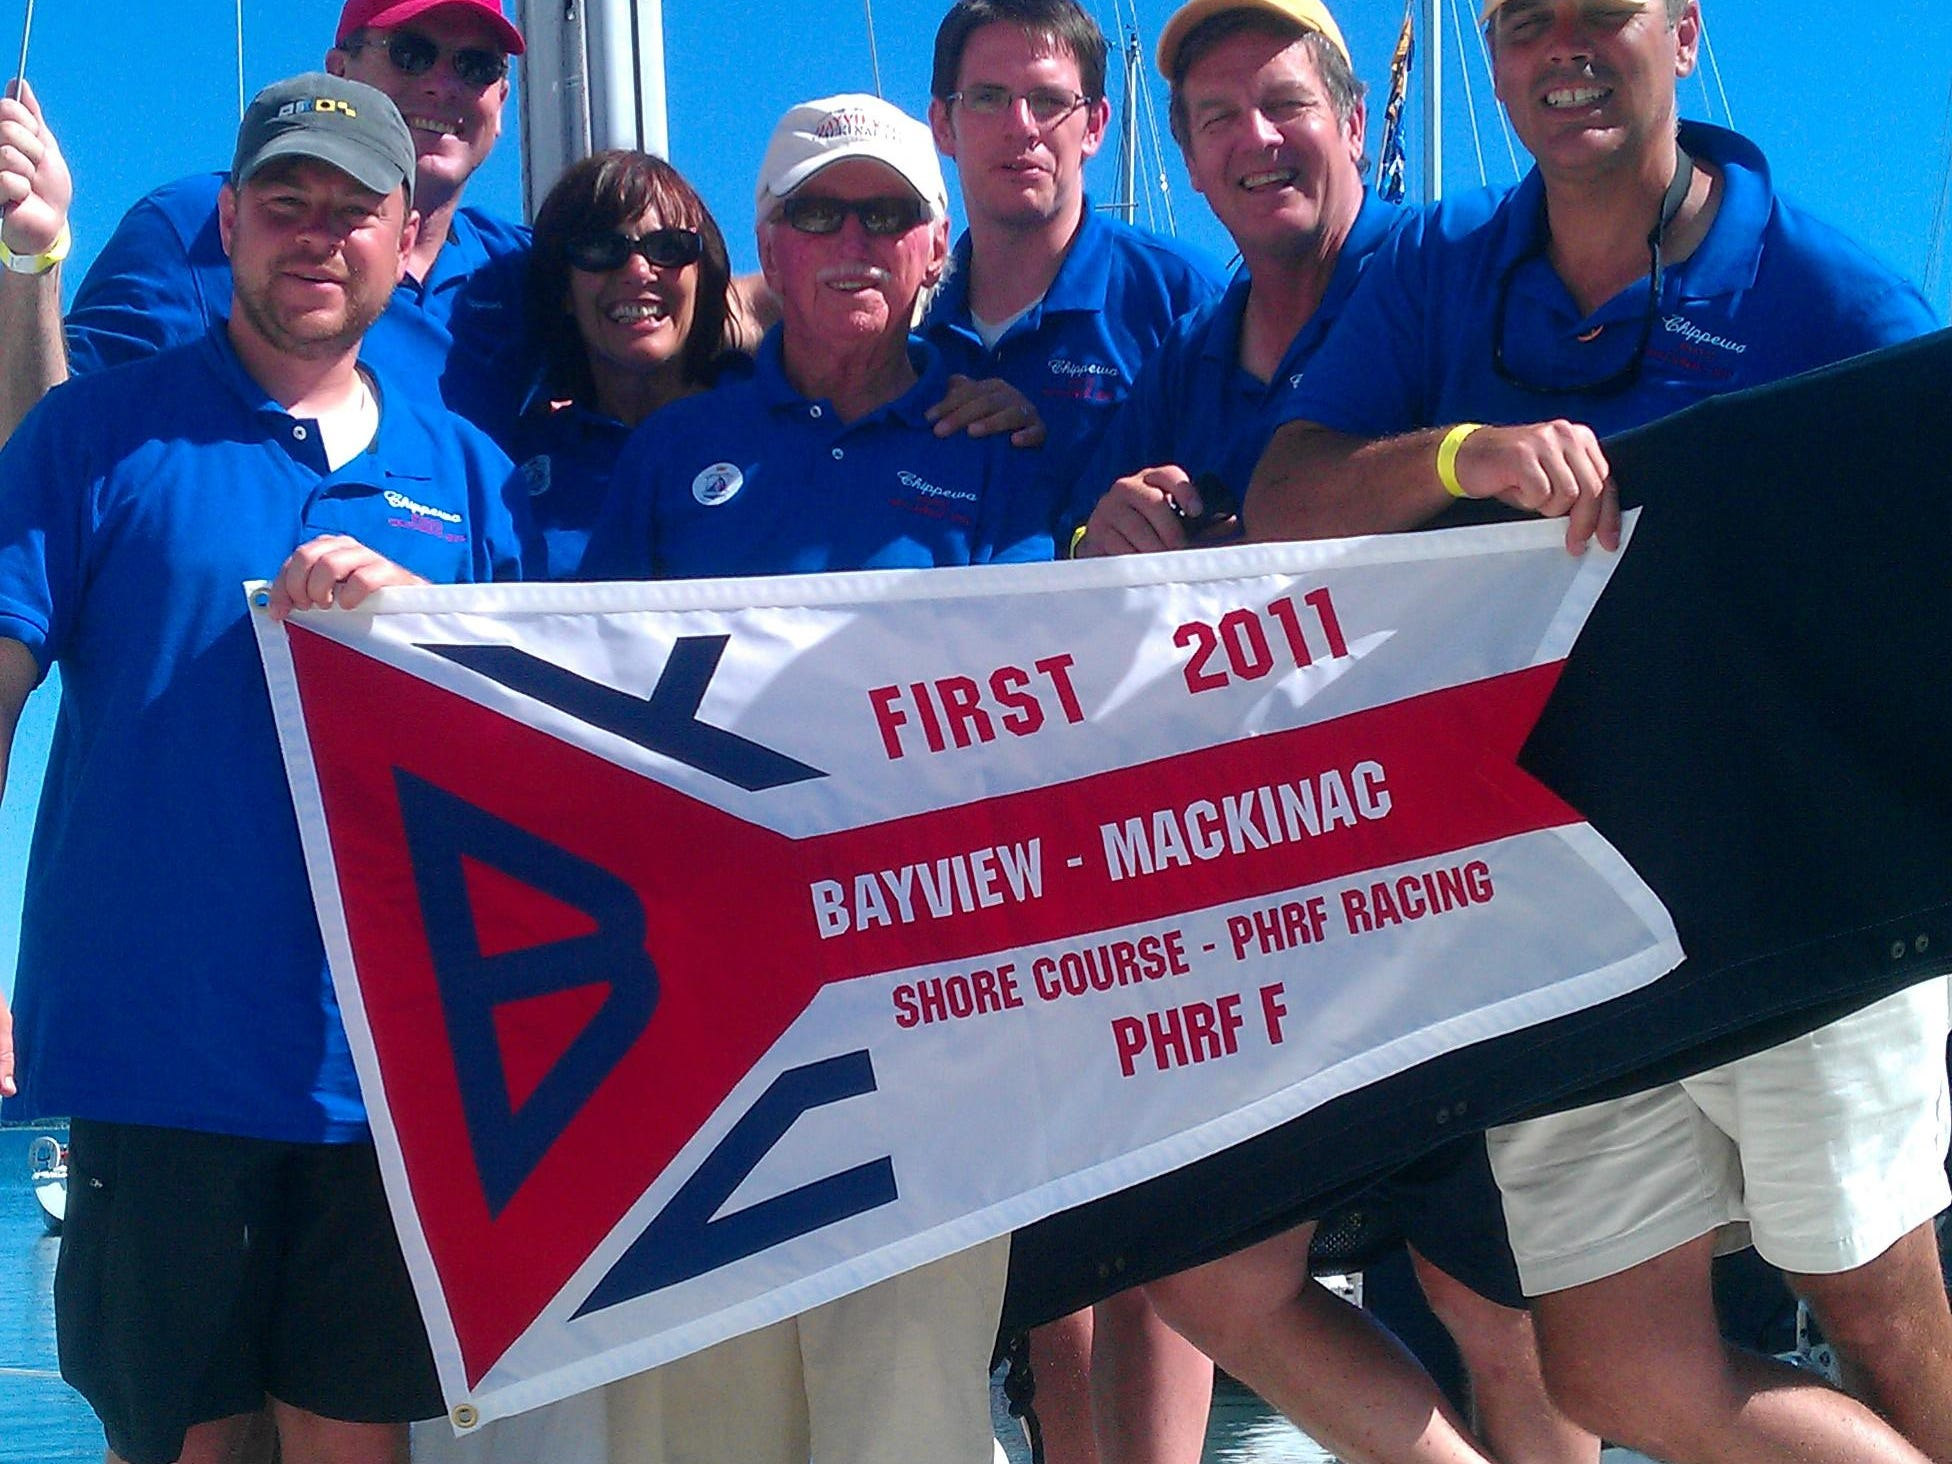 The crew of Chippewa holds their pennant for first place in their class. From left to right are Trevor Floyd, Don Robinson, Pam Wall, Bob Wall, Rob Wall, Greg Cyrul and Chris Cyrul.